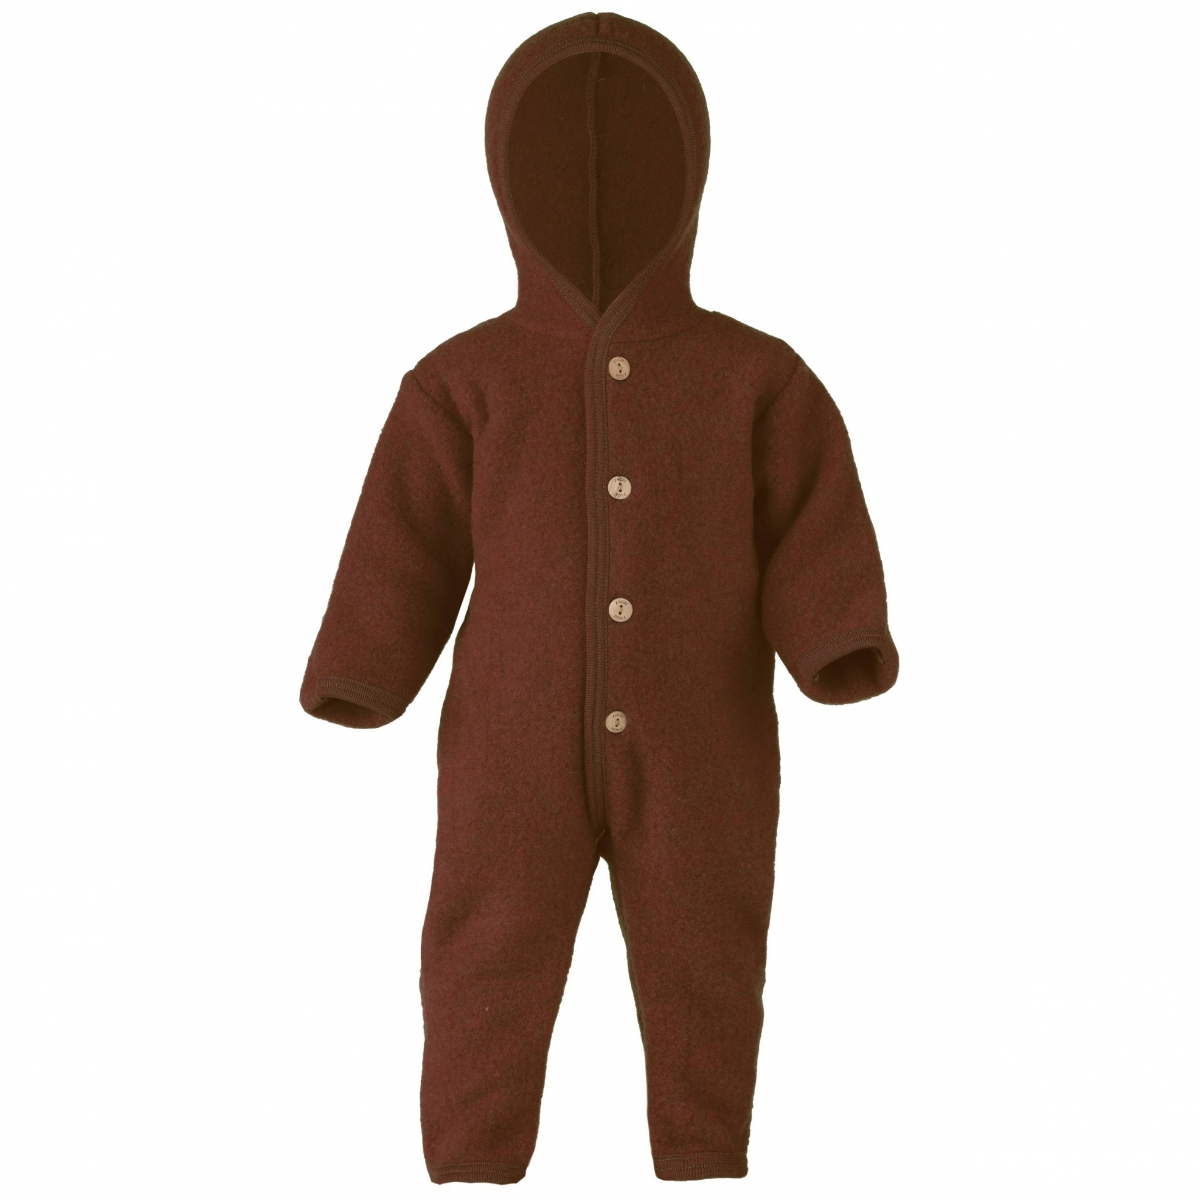 ENGEL - Hooded overall with buttons cinnamon melange - 1